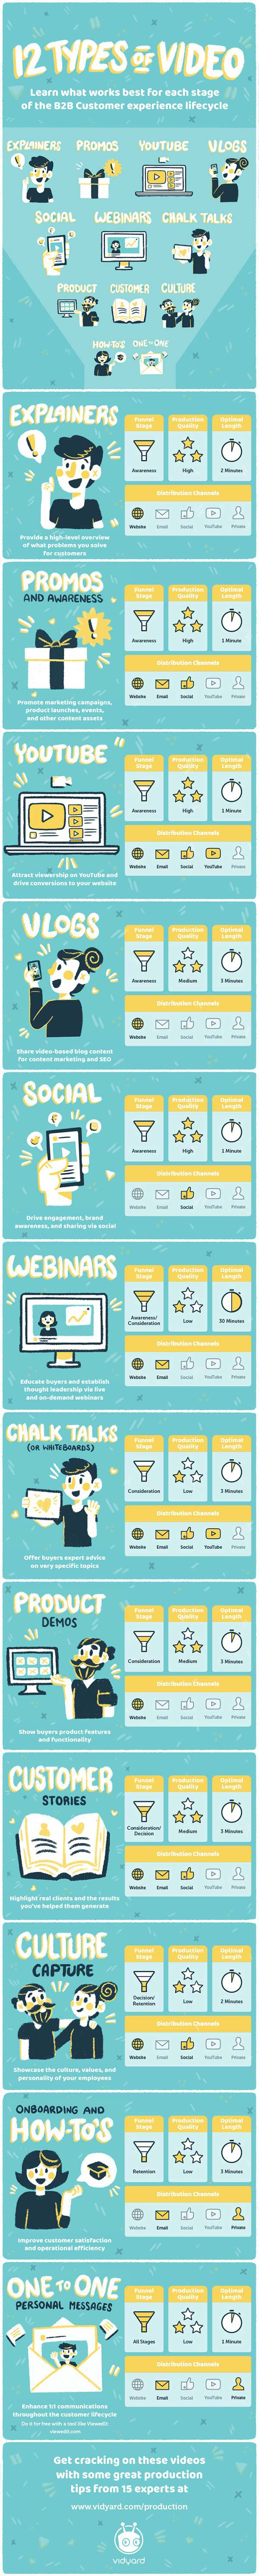 12 Marketing Videos for Your Business (that Viewers Love to Watch) - Infographic